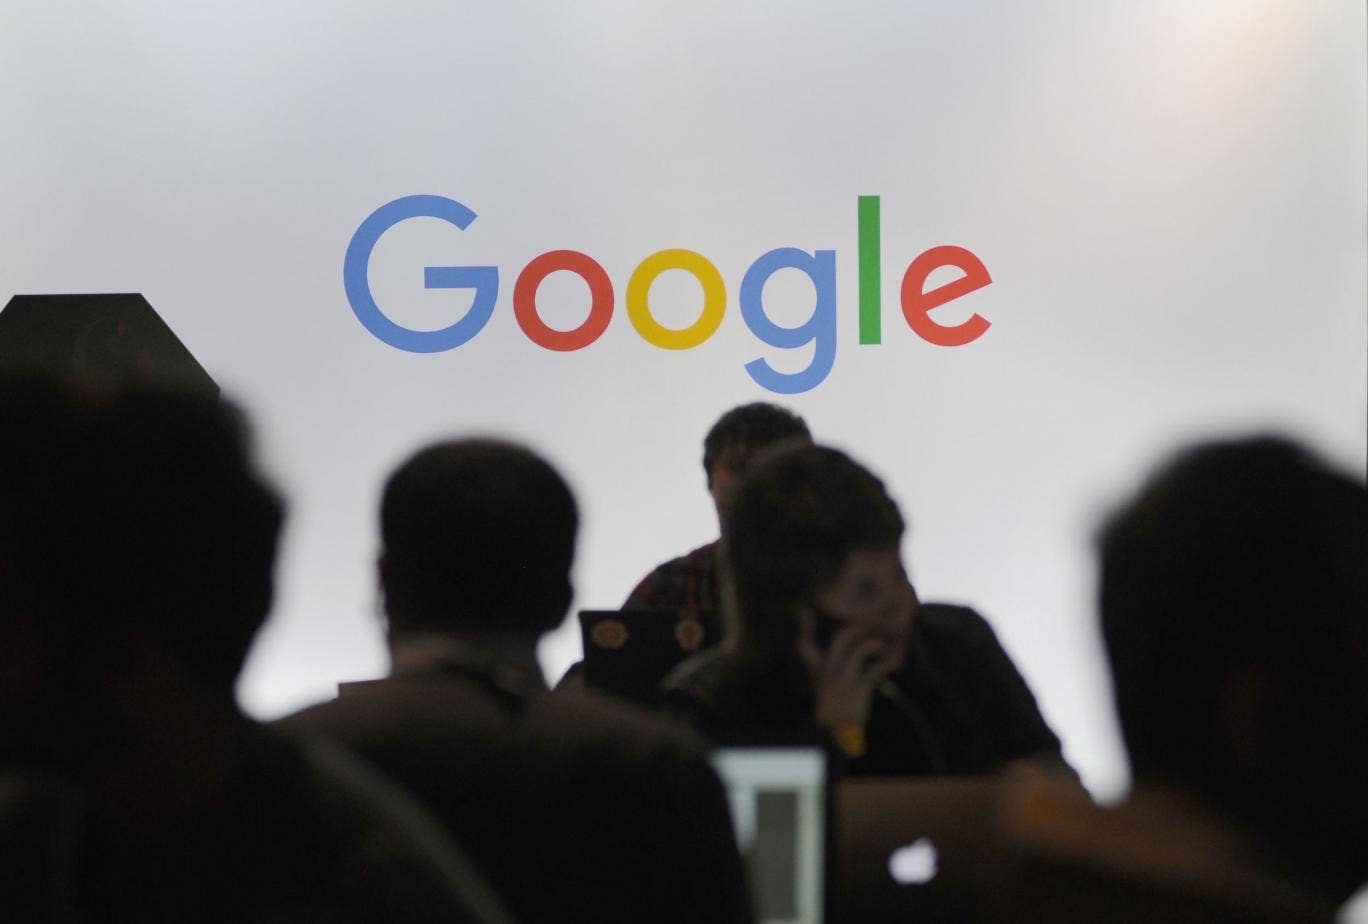 Google tells British lawmakers of counter-terror scheme